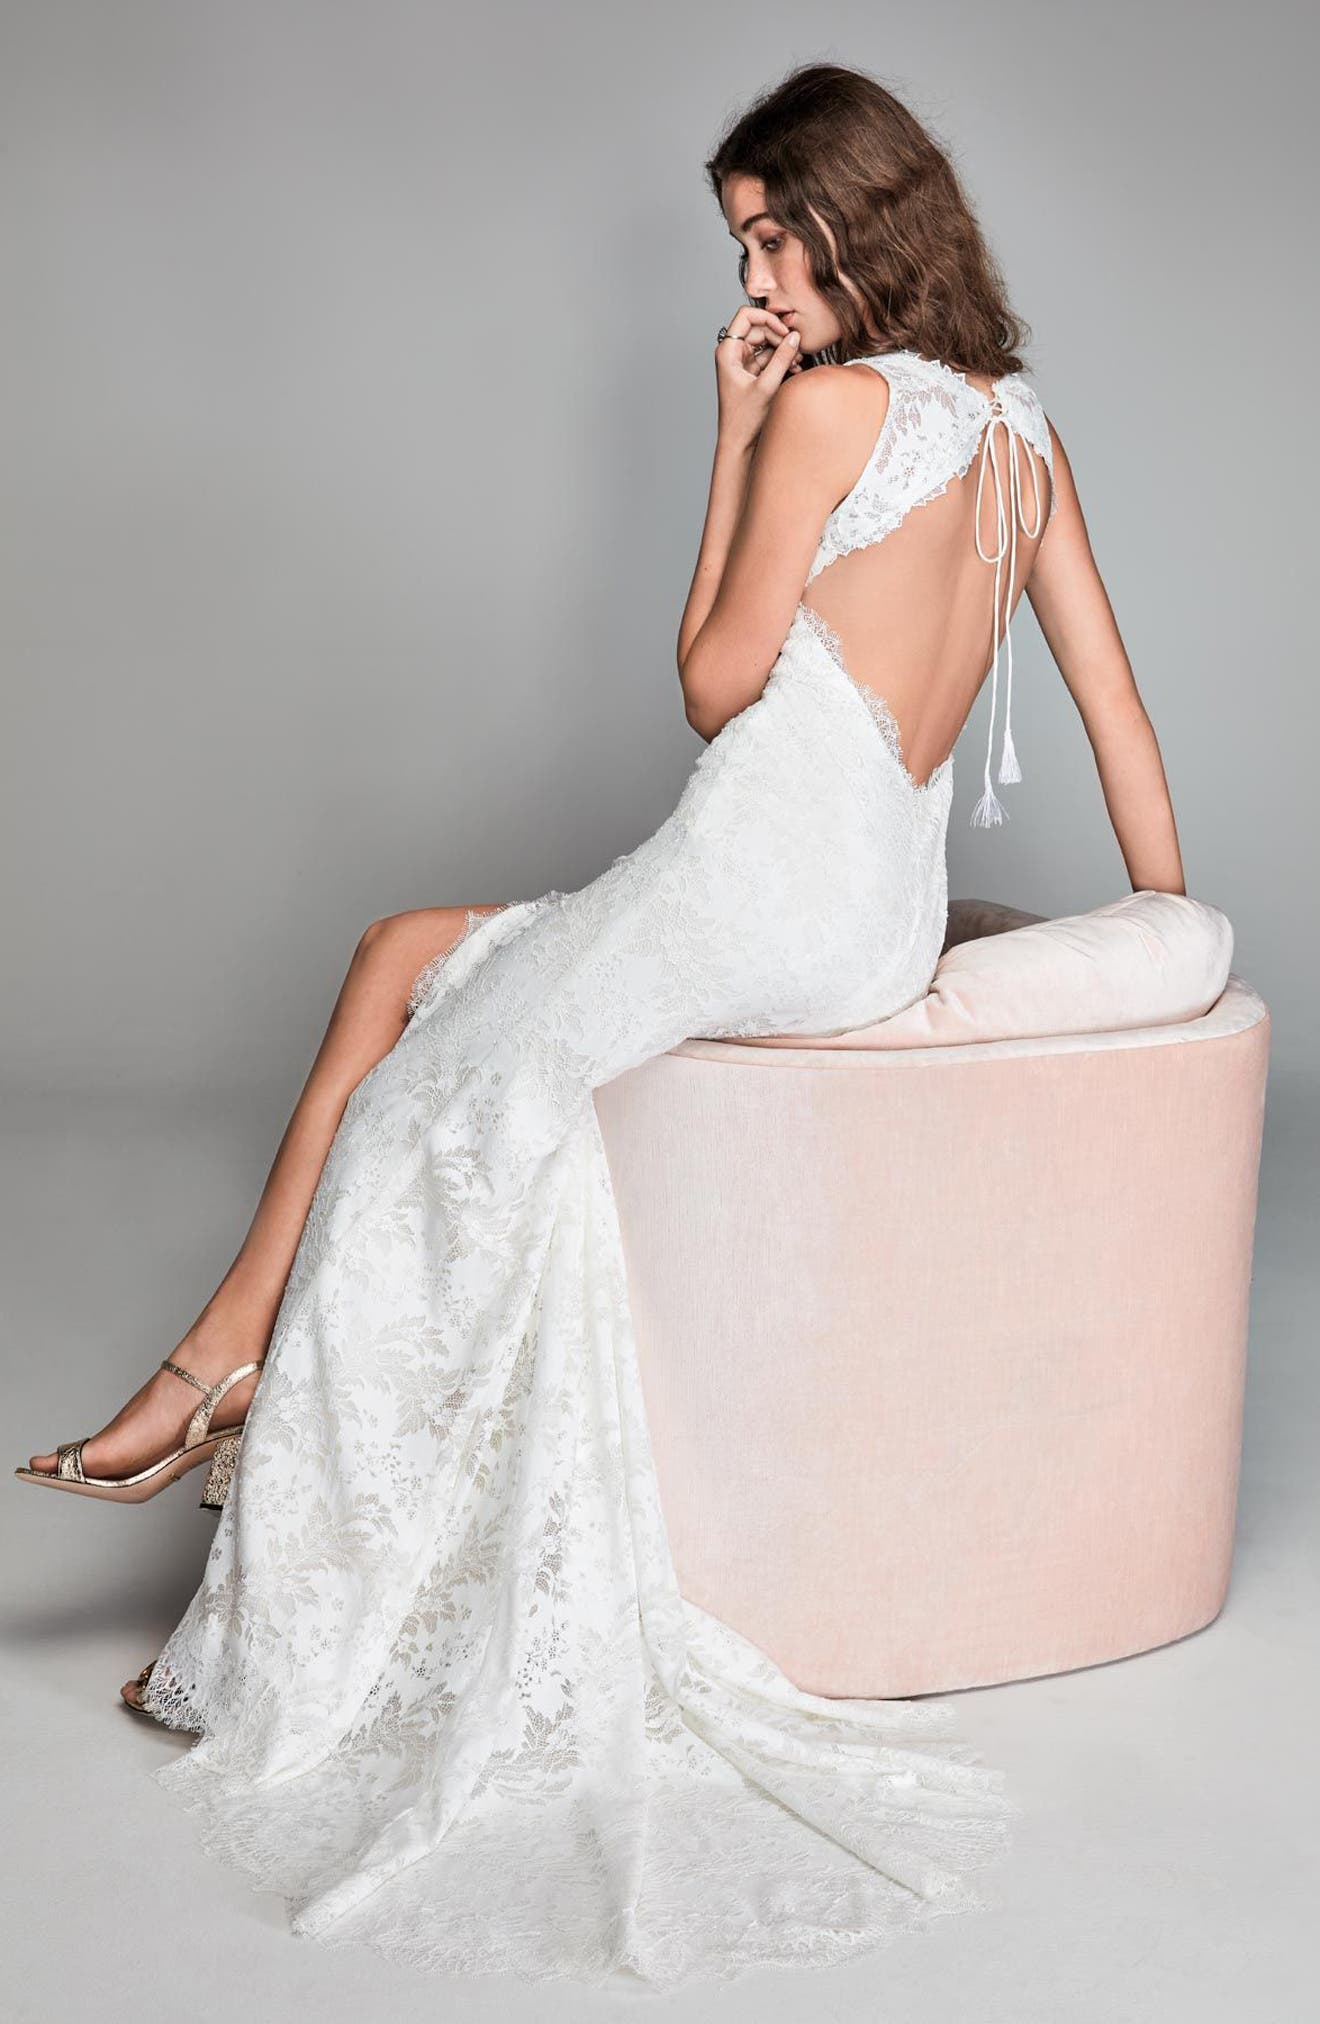 Libra Lace Sheath Gown,                             Alternate thumbnail 3, color,                             IVORY/ OYSTER